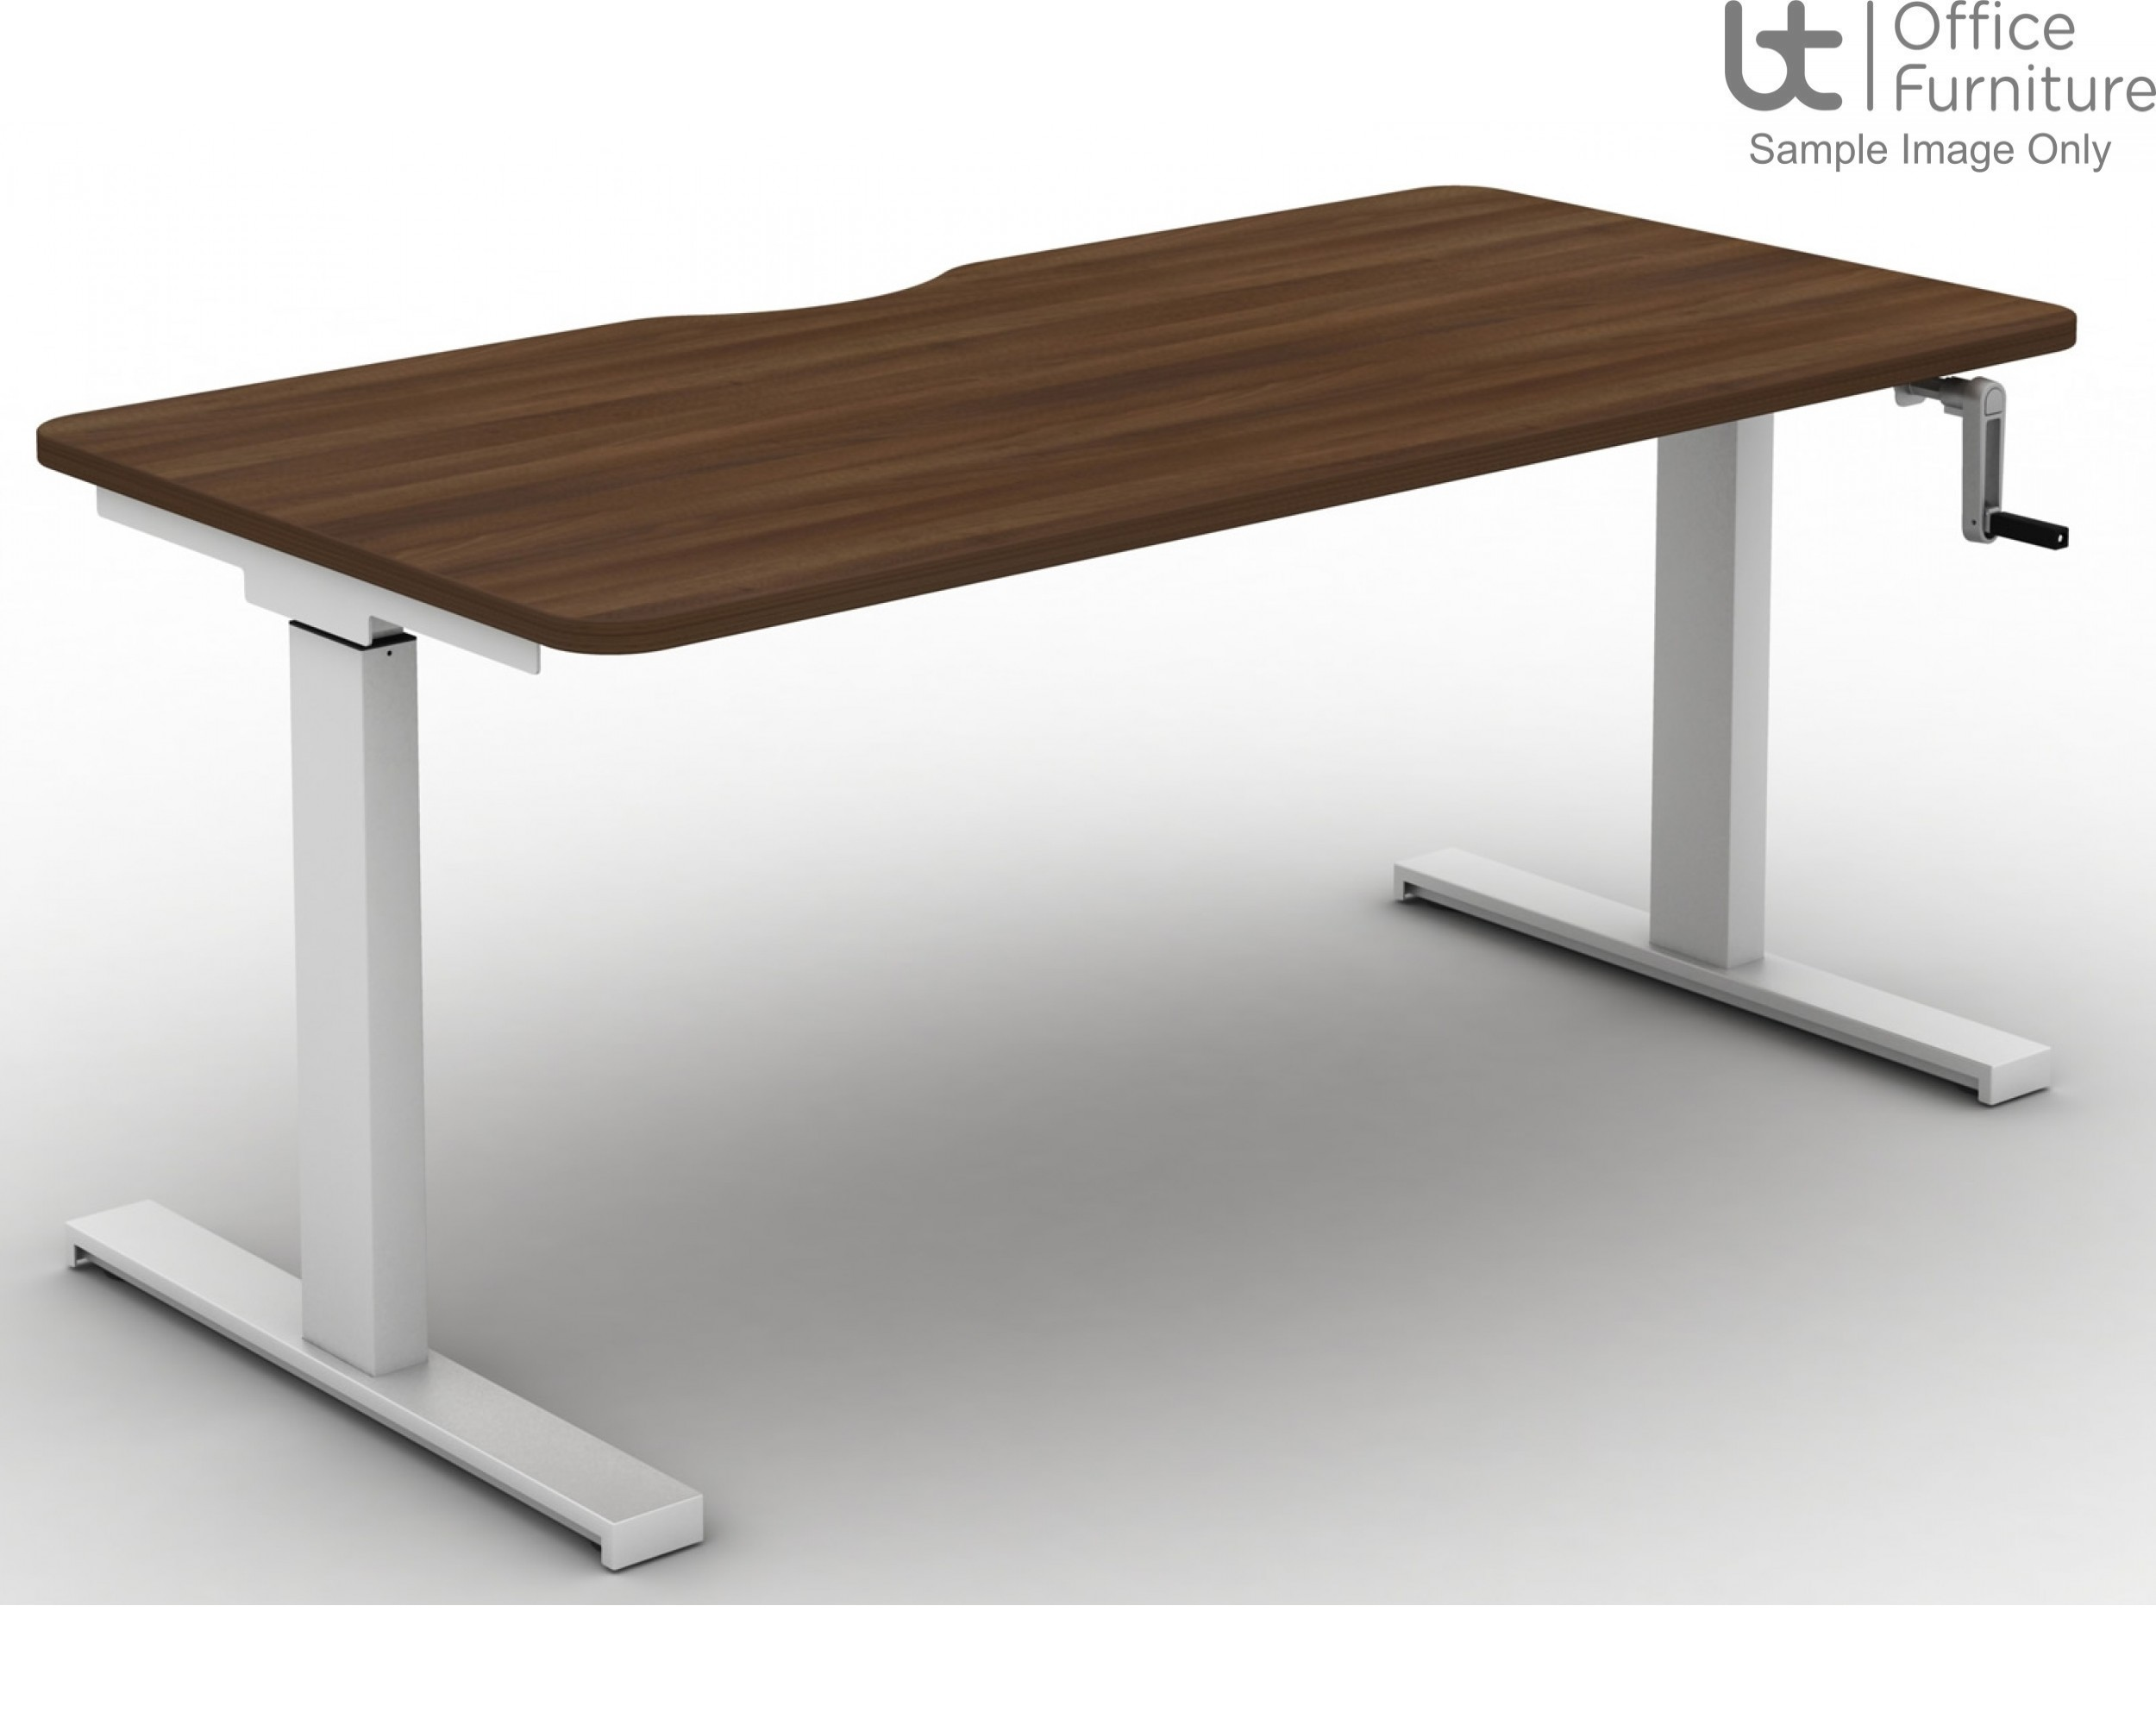 Move Crank Handle Rectangular Height Adjustable Sit-Stand Desk - Tops Scallop & Rounded Corners